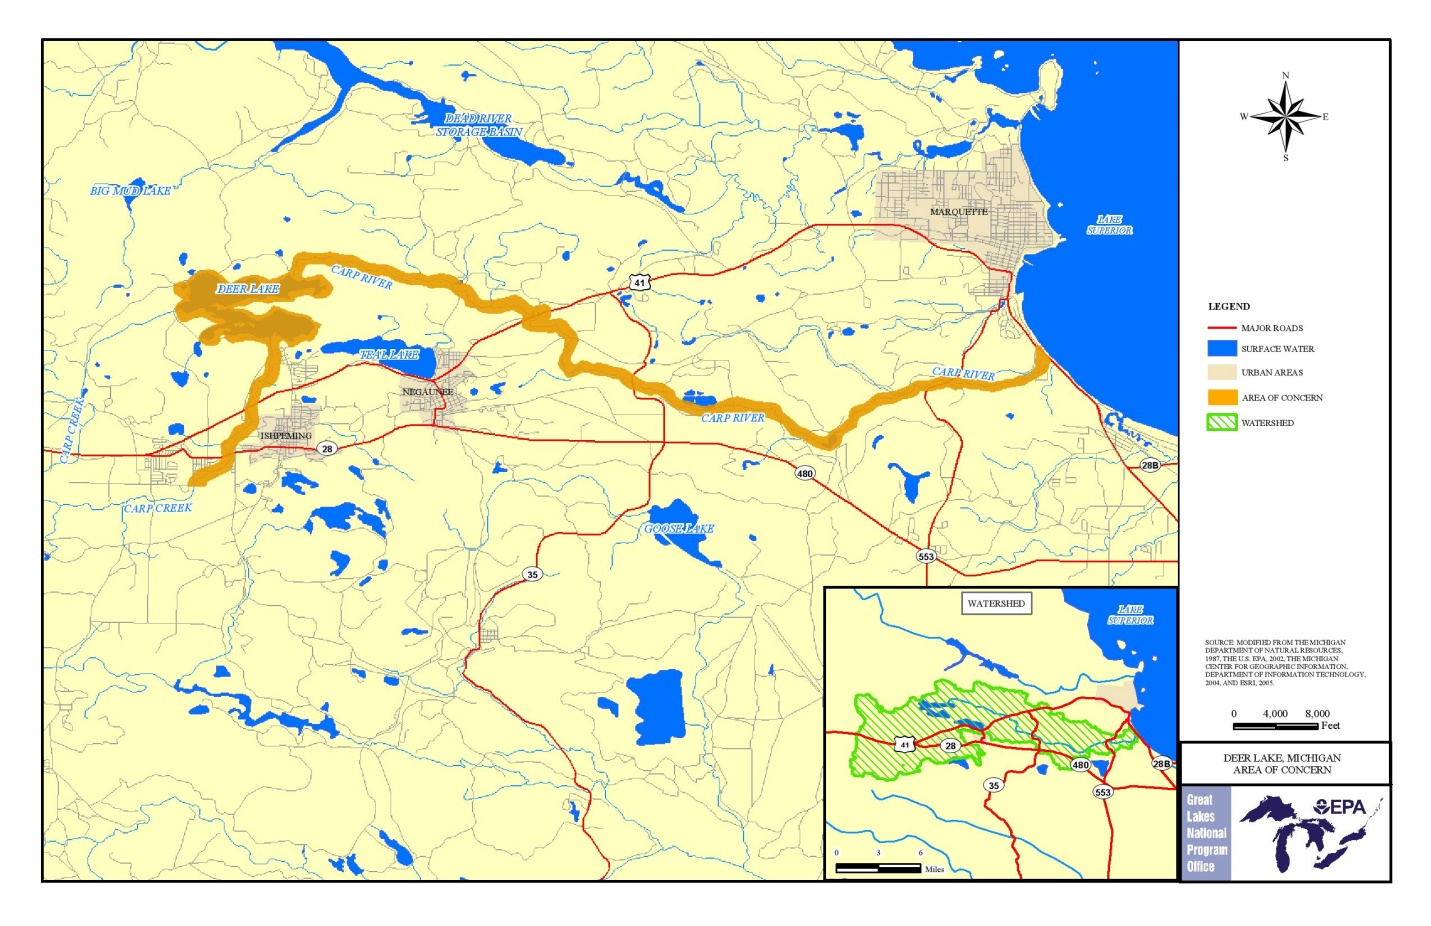 A boundary map of the Deer Lake Area of Concern. Credit: EPA.